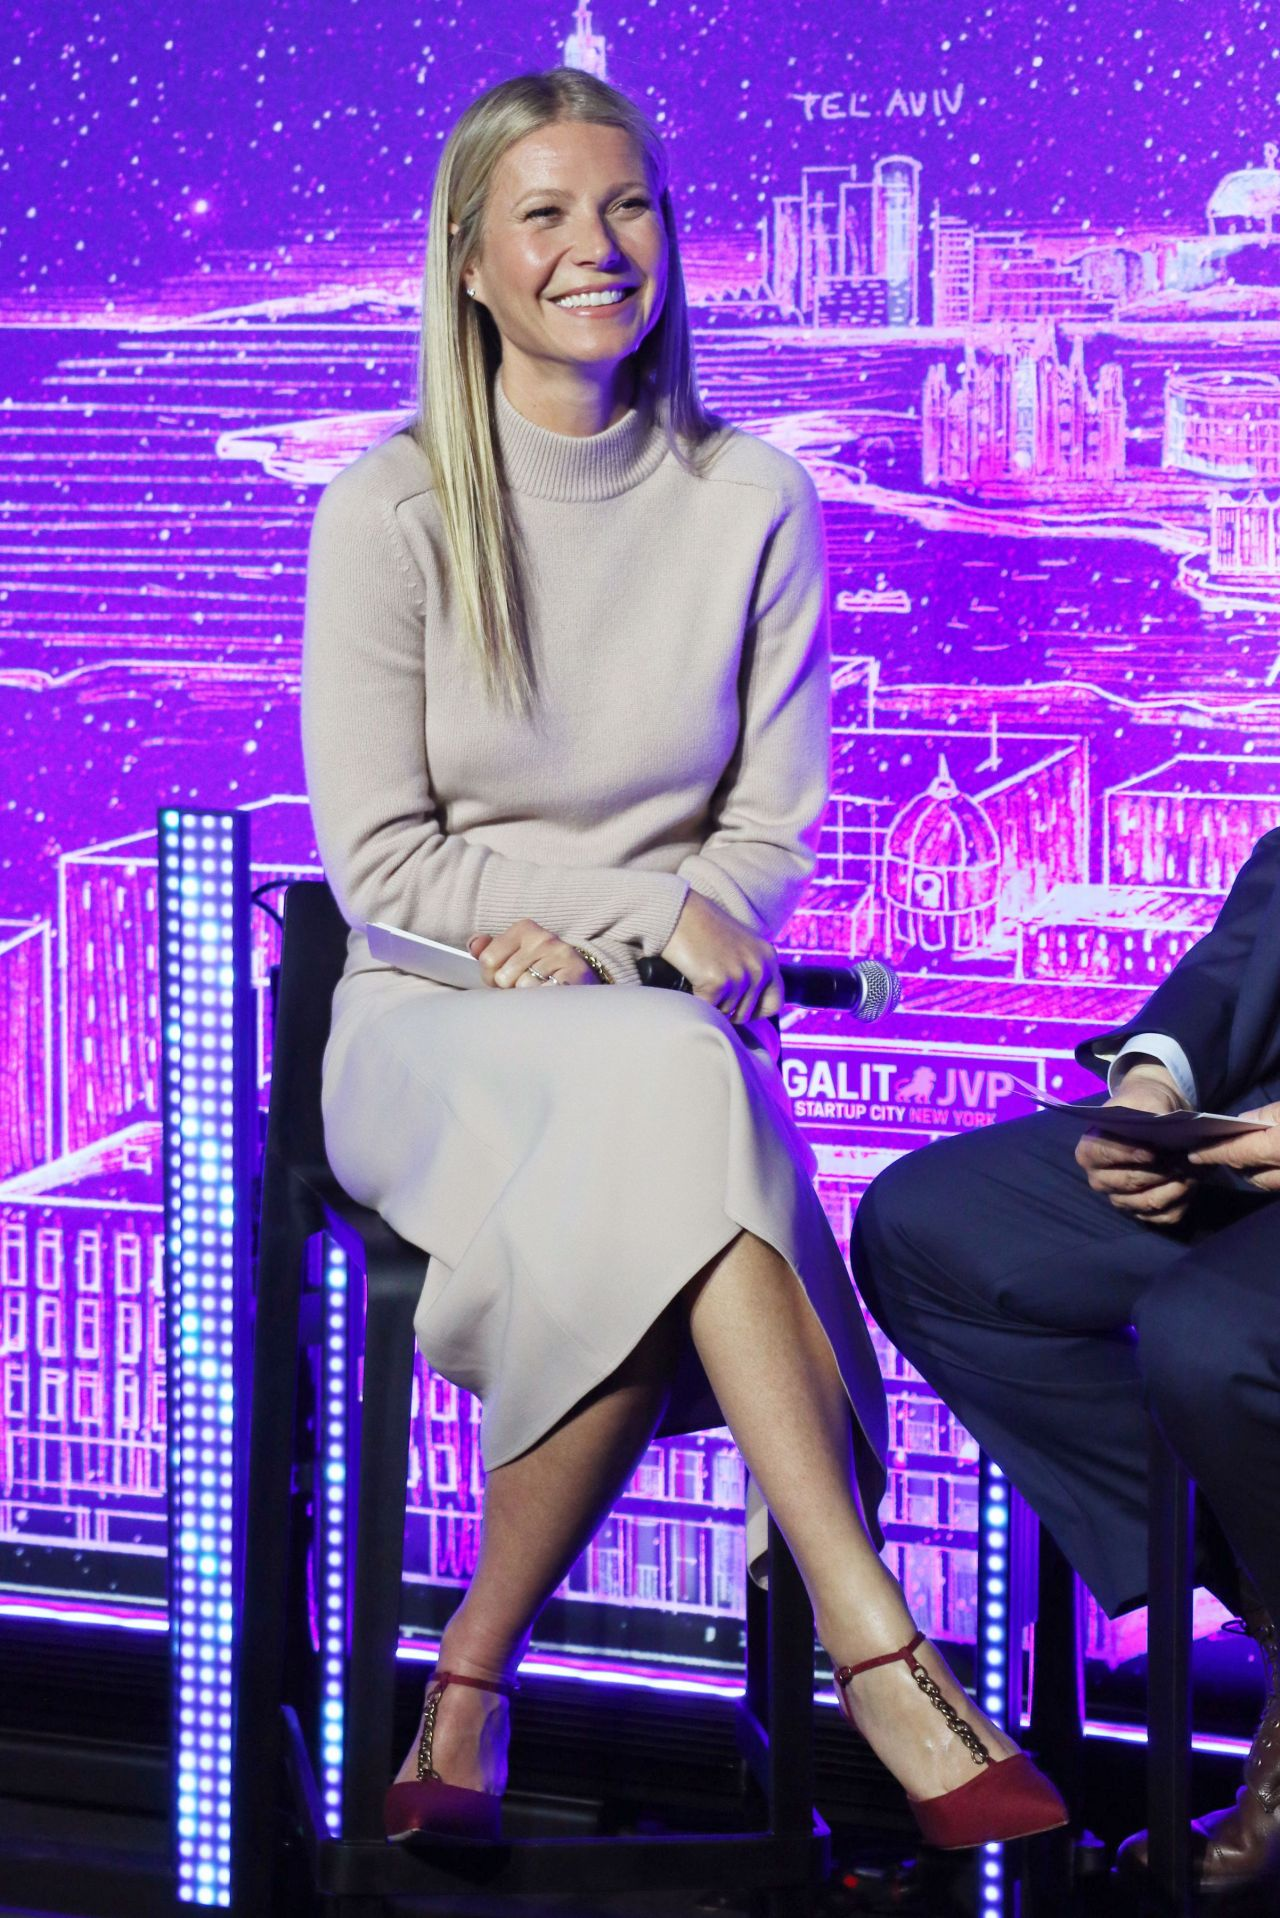 gwyneth-paltrow-host-panel-discussion-with-dr-erel-margalit-in-ny